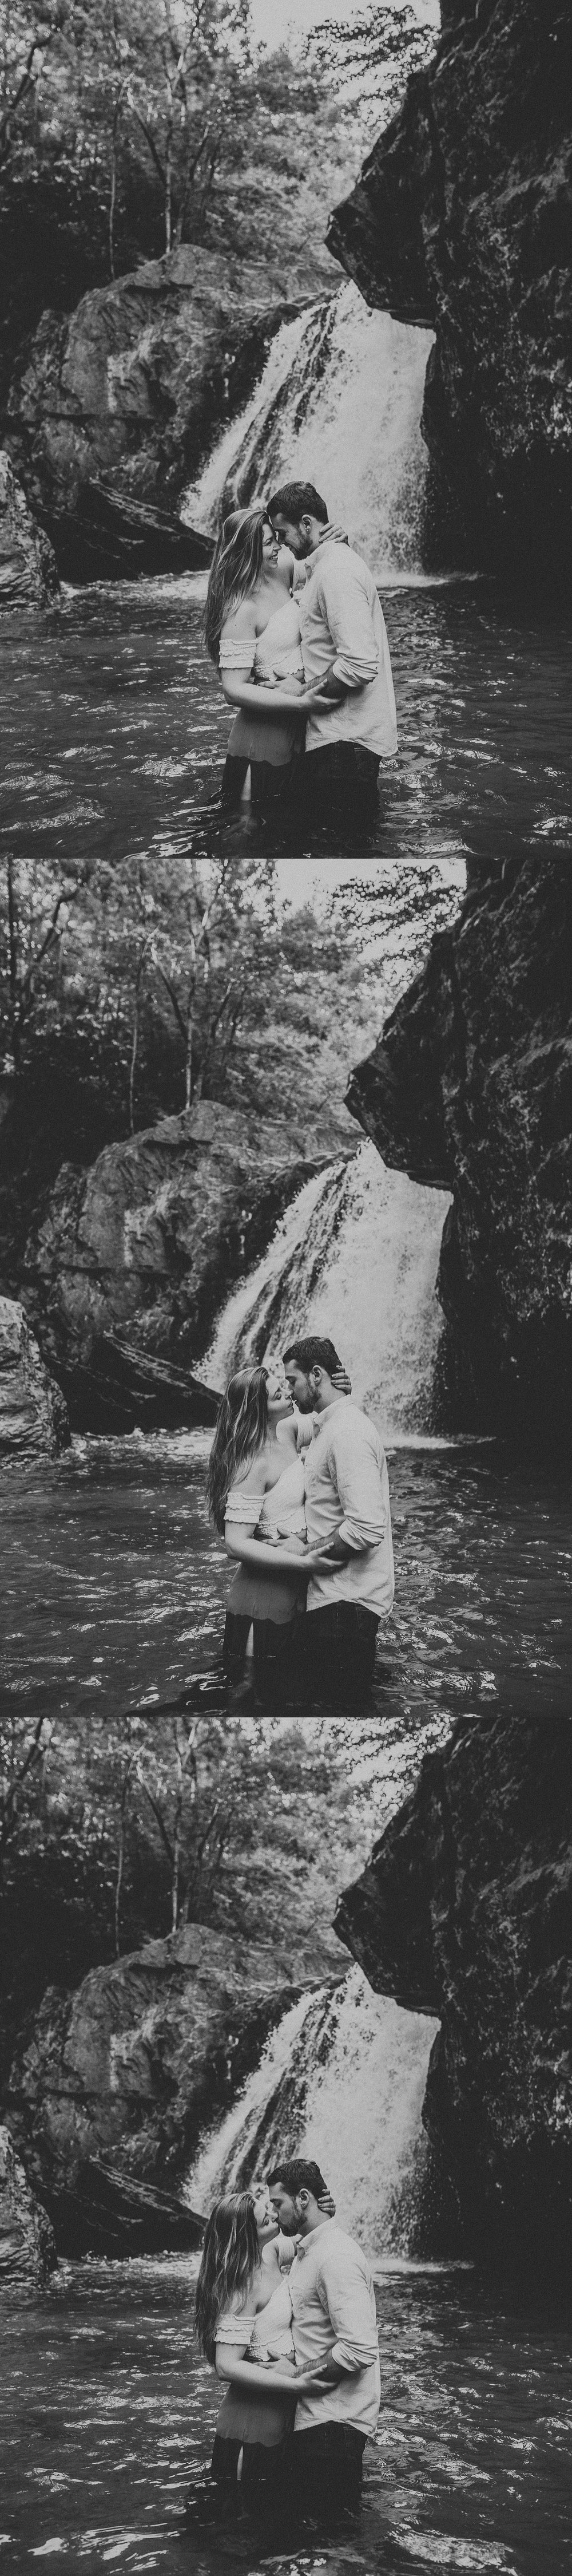 Summer Evening Boho Couples Session at Kilgore Falls Waterfalls in Pylesville Maryland_0042.jpg